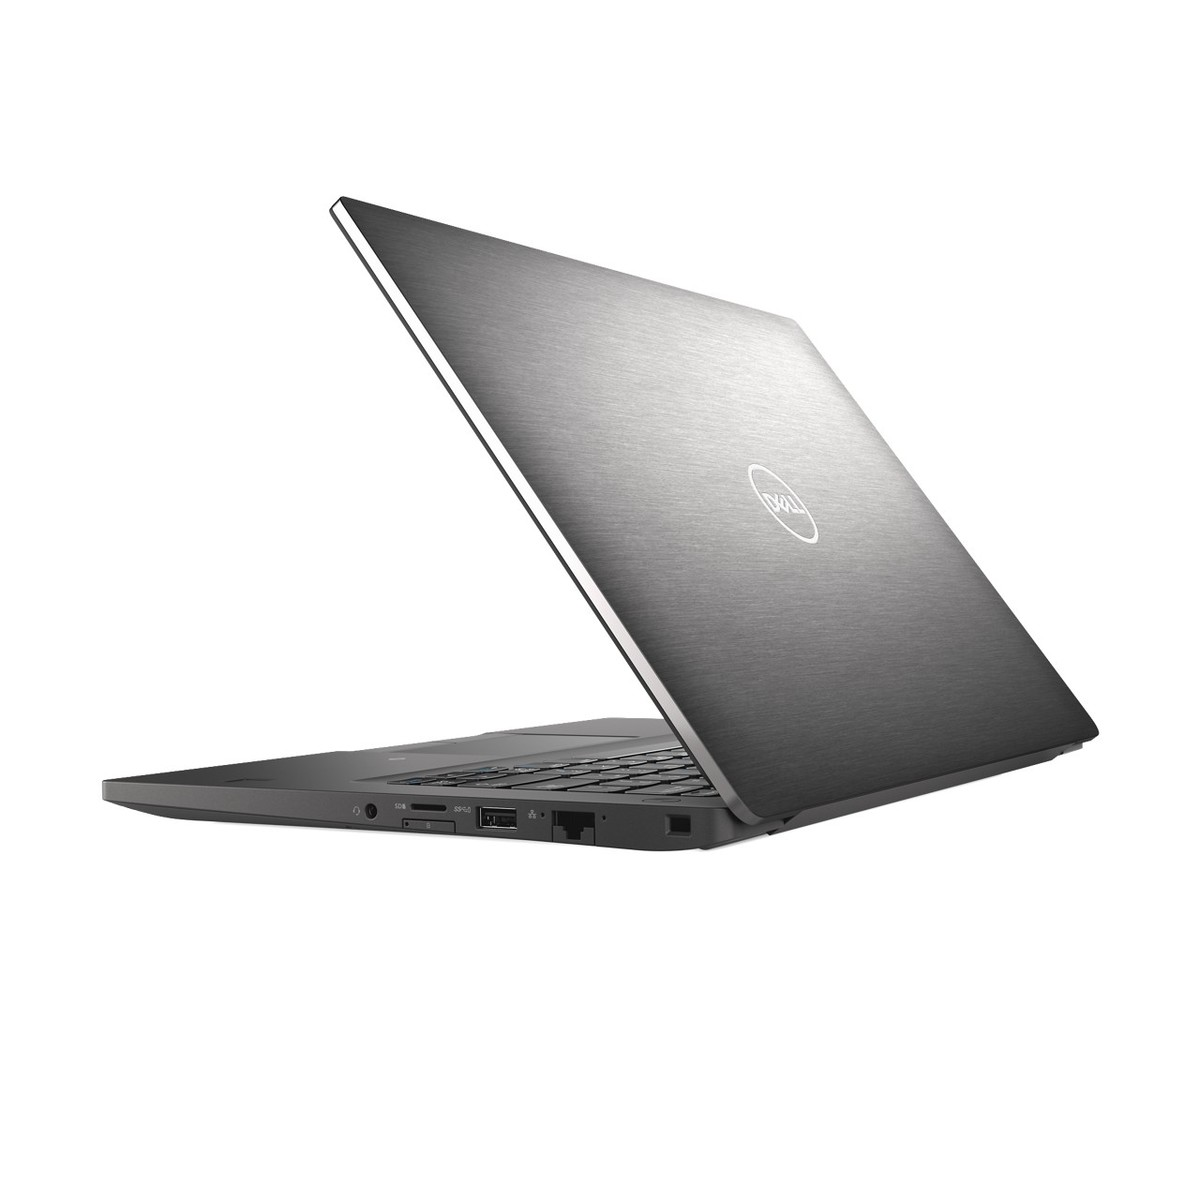 Dell Latitude 7390 And 7490 Are Getting New Aluminum